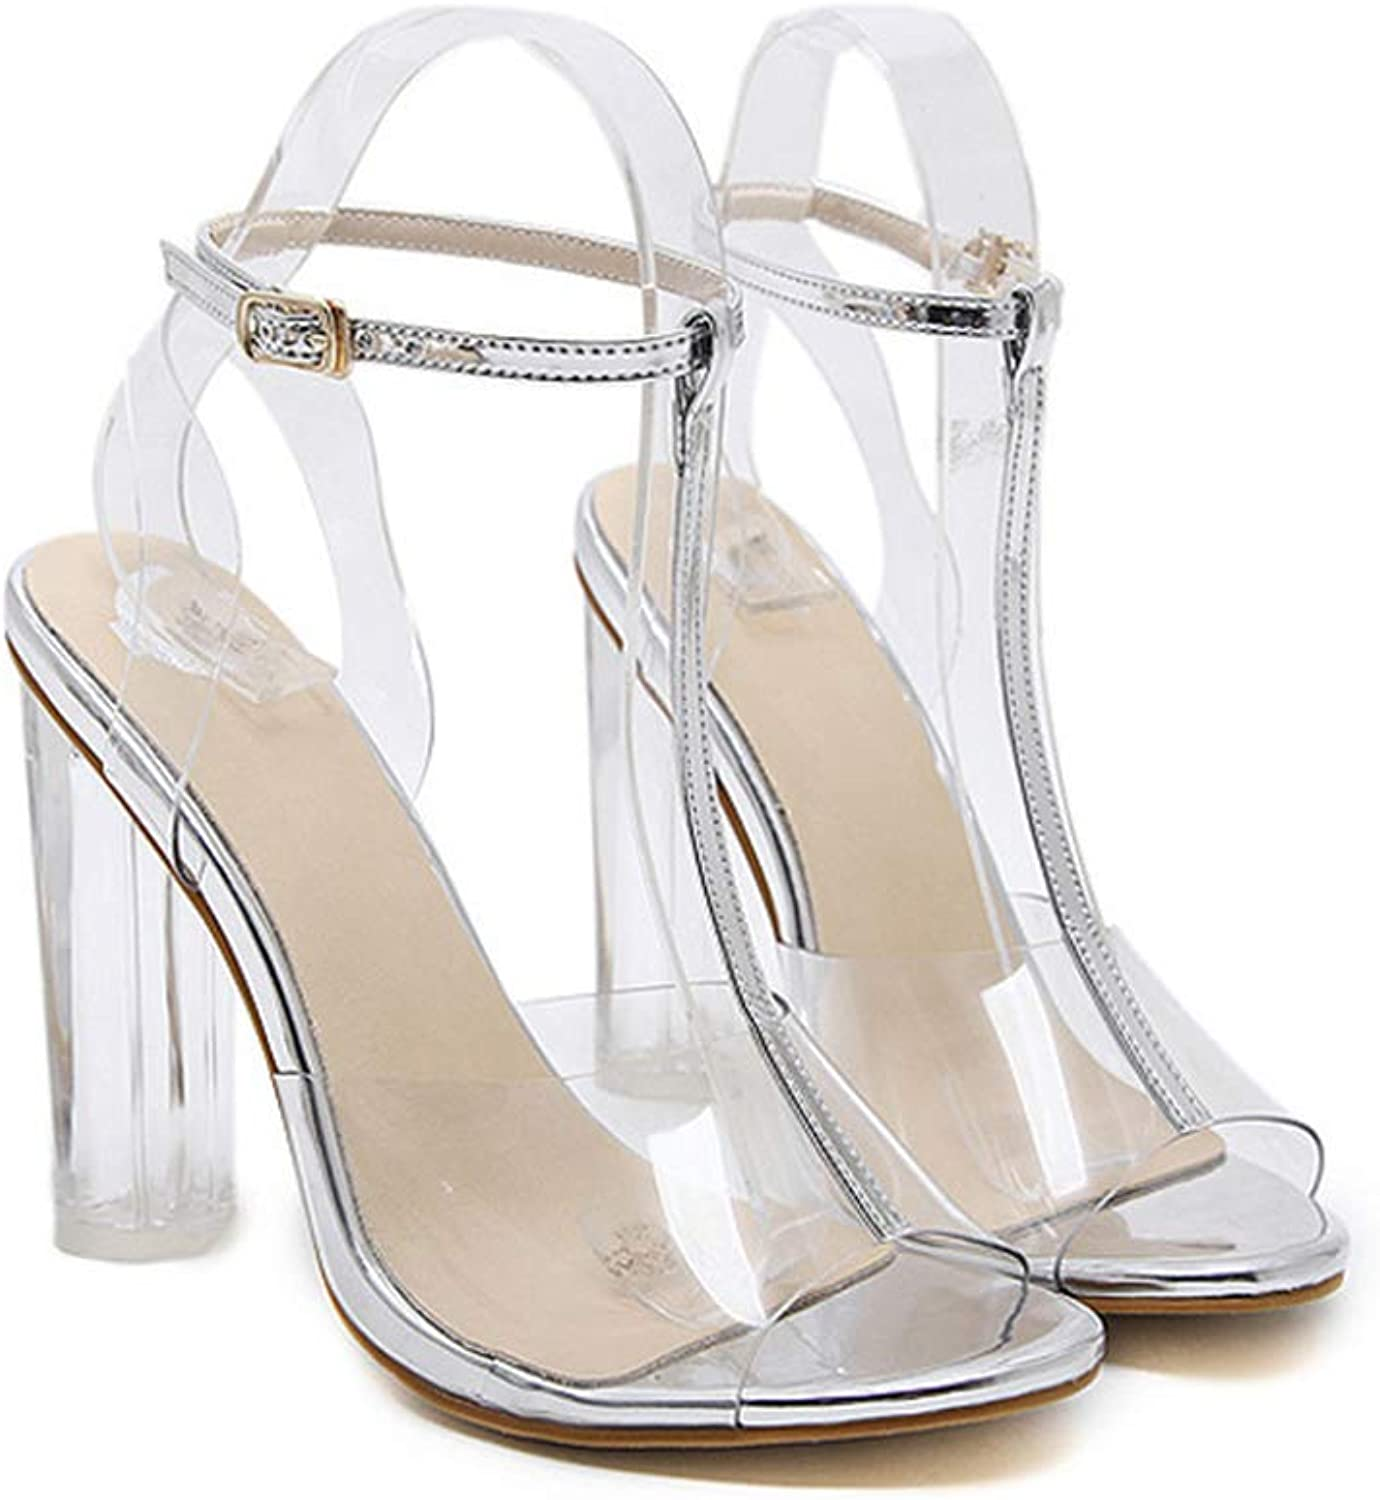 Women's Fashion Sexy Clear Strappy Block Chunky High Heel Open Peep Toe Sandal,Silver,7MUS